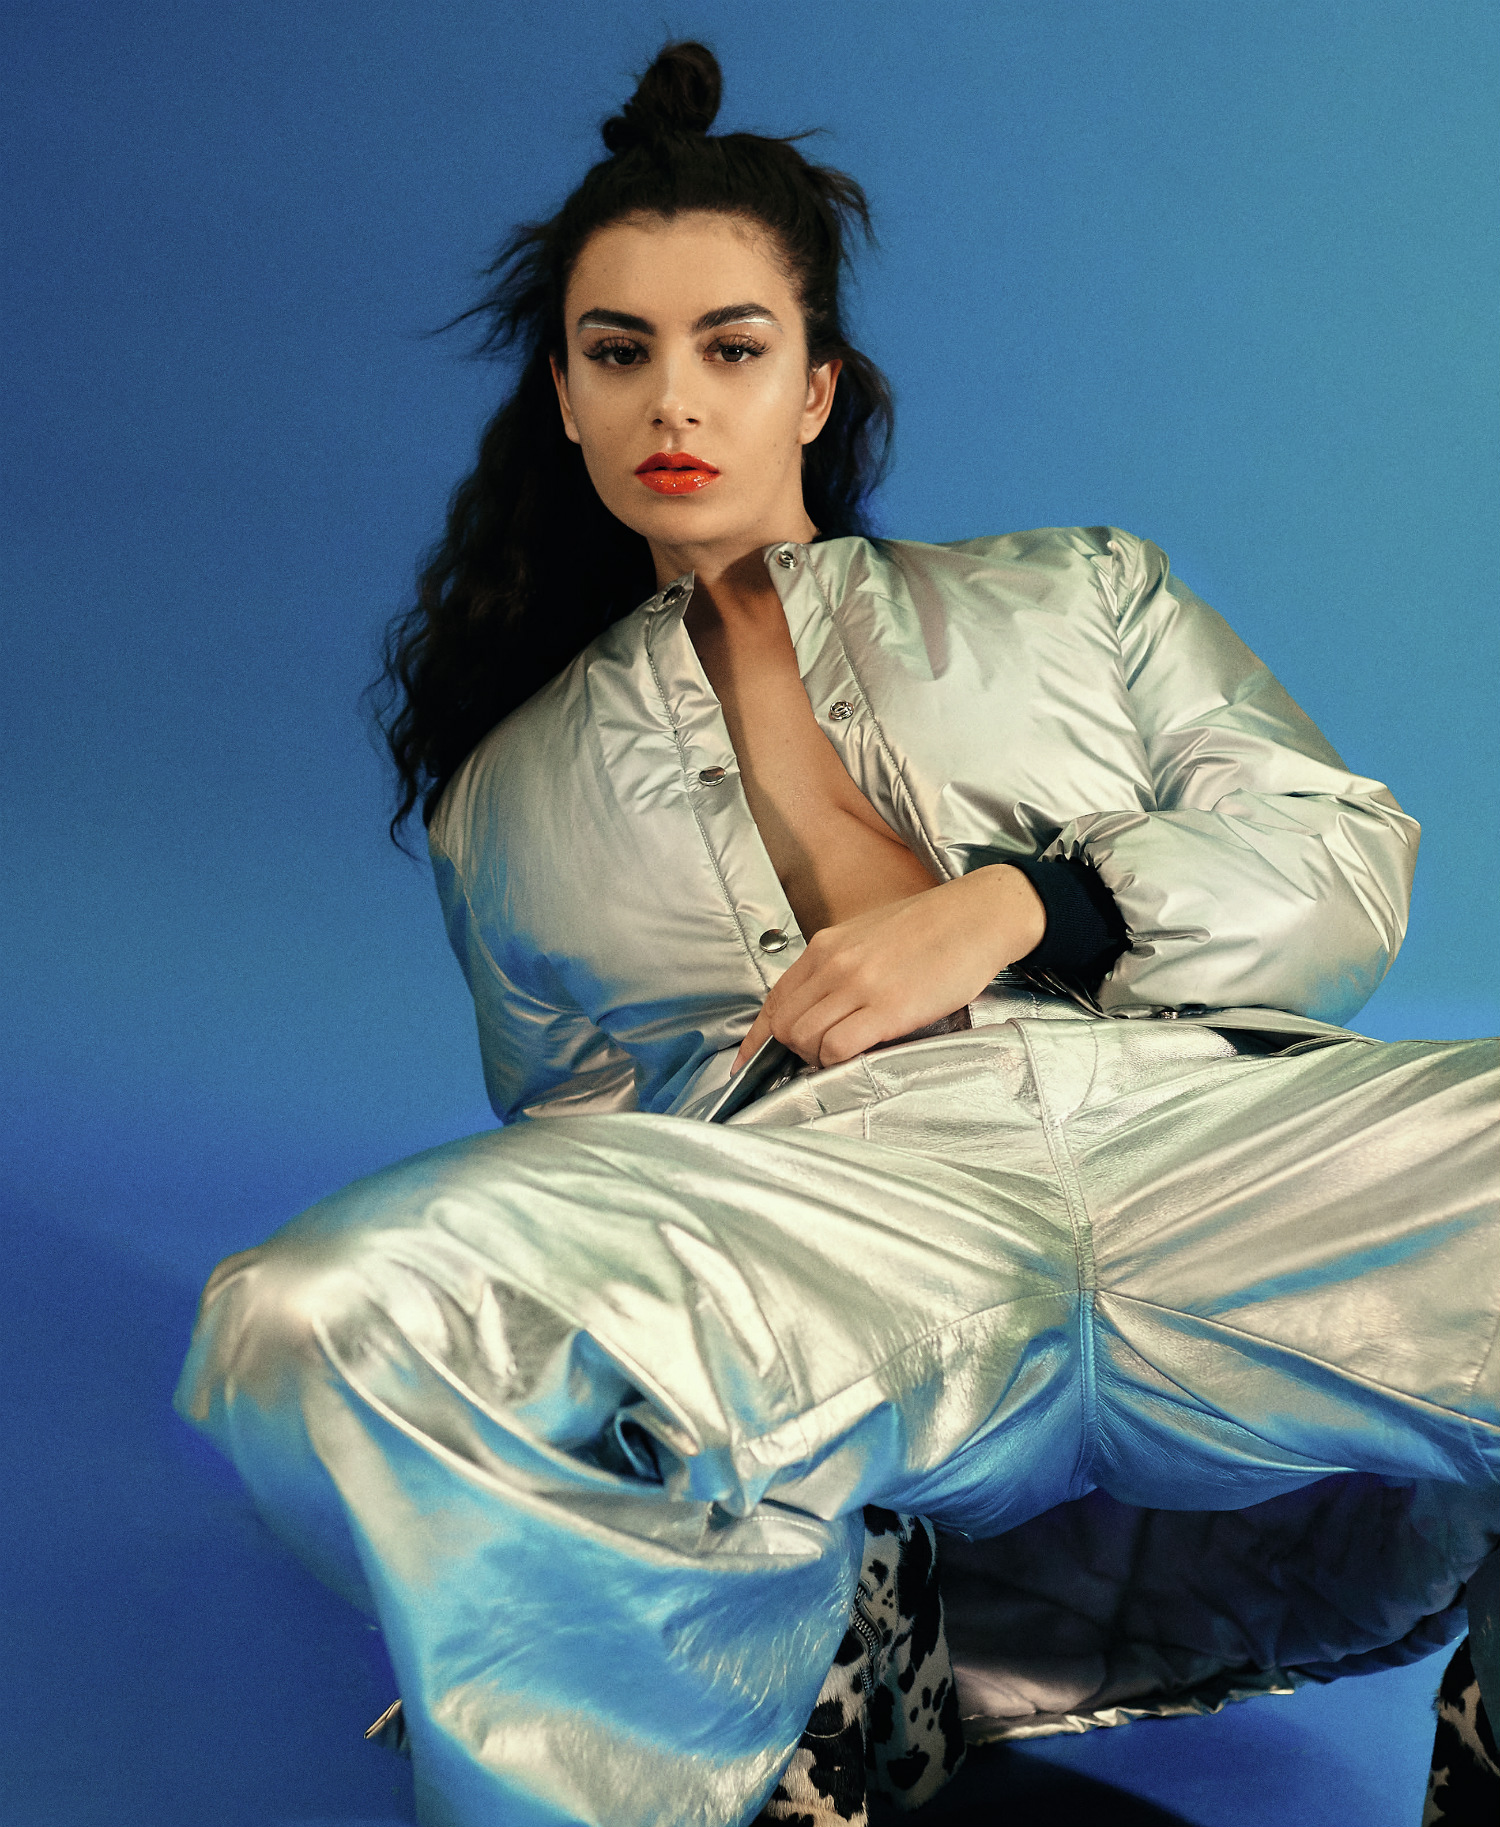 Vivienne Westwood T Shirt Charli Xcx On Feminism Gender And Music Photography By